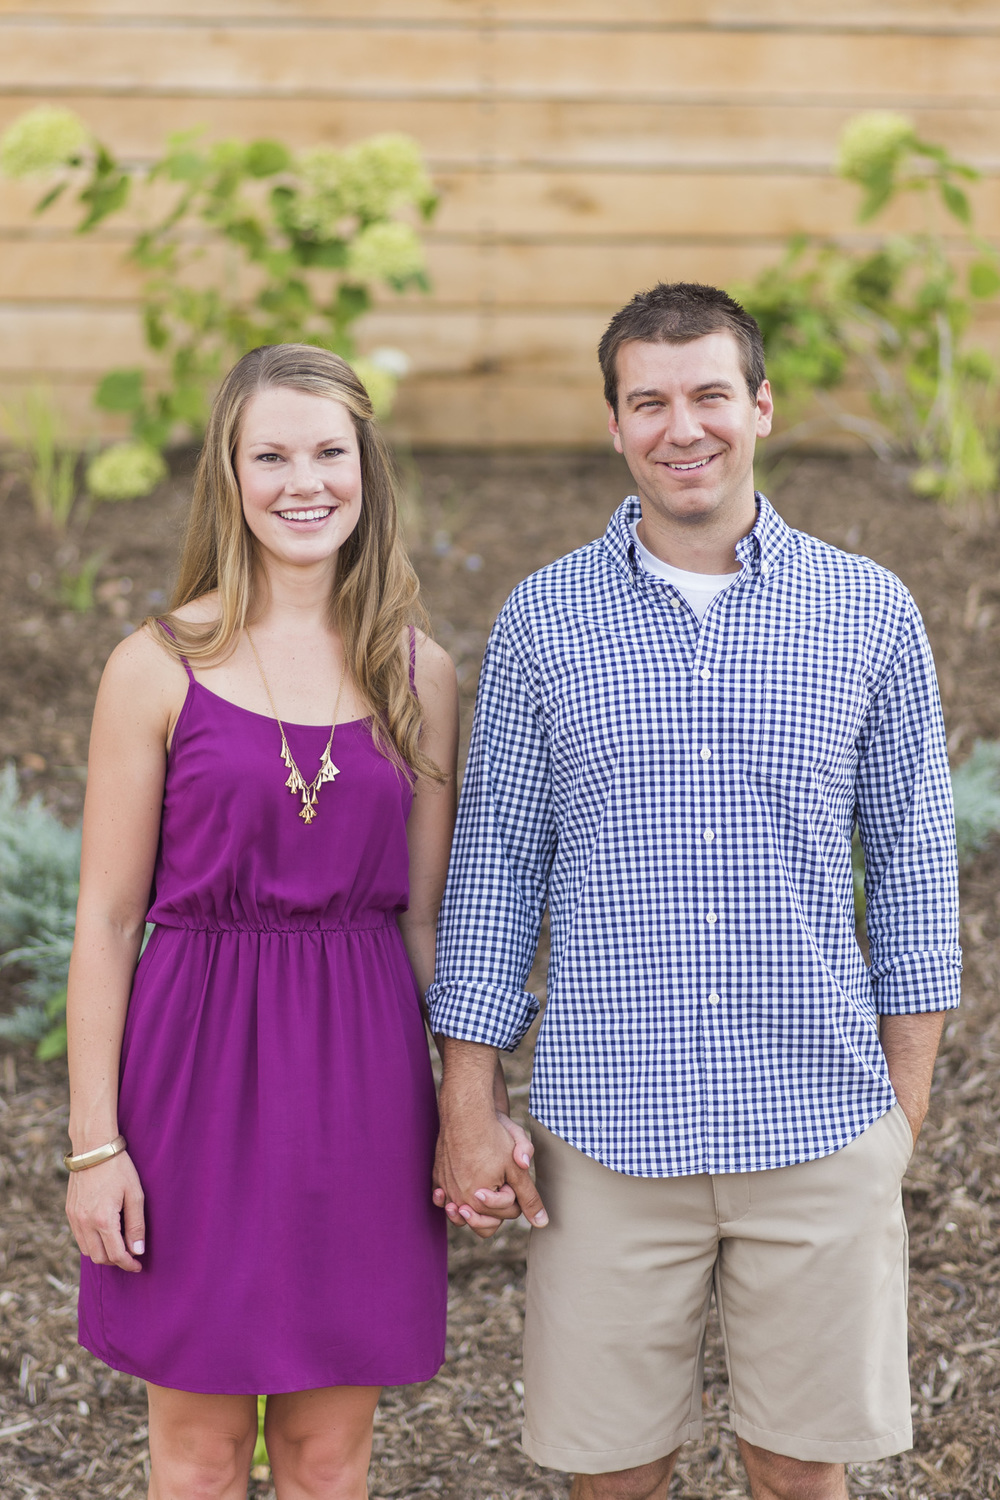 Downtown_Lynchburg_VA_craddock_Terry_Water_Fountain_Engagement_Session_Photos255.jpg